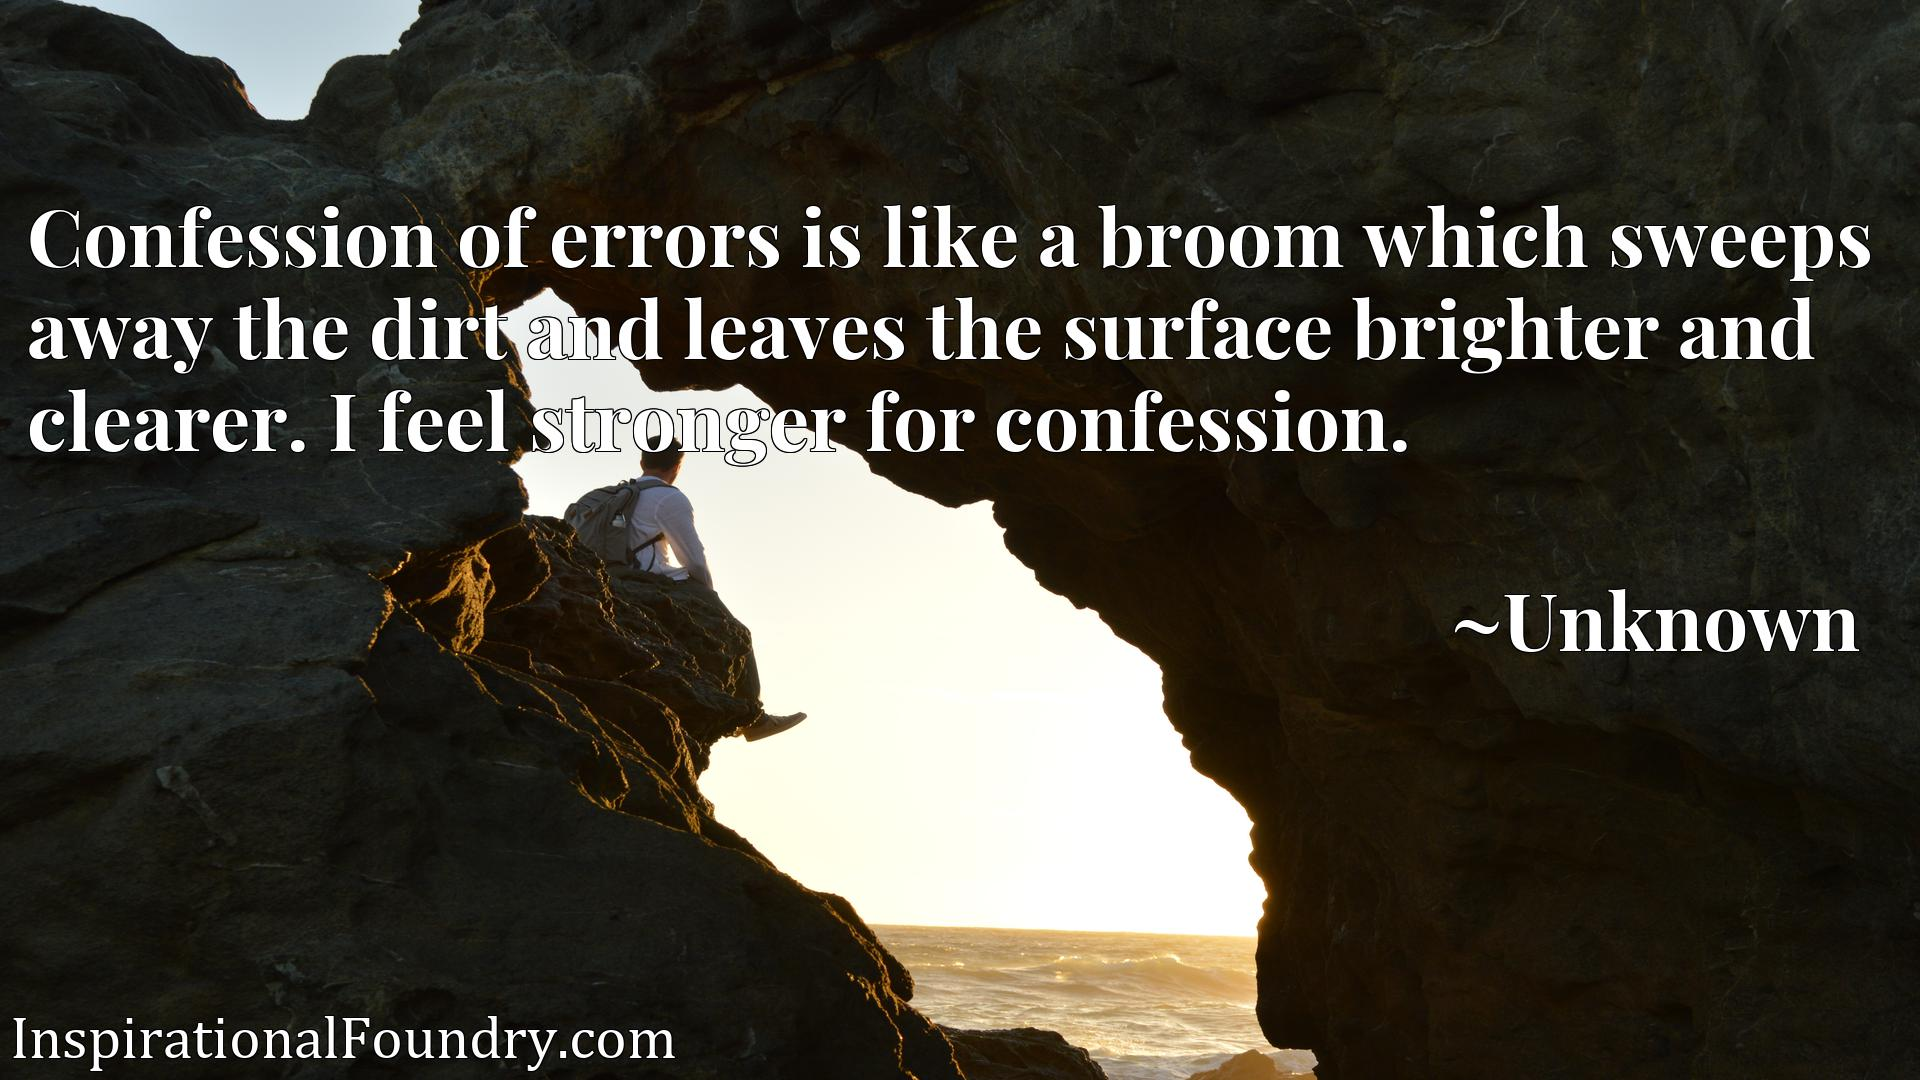 Quote Picture :Confession of errors is like a broom which sweeps away the dirt and leaves the surface brighter and clearer. I feel stronger for confession.